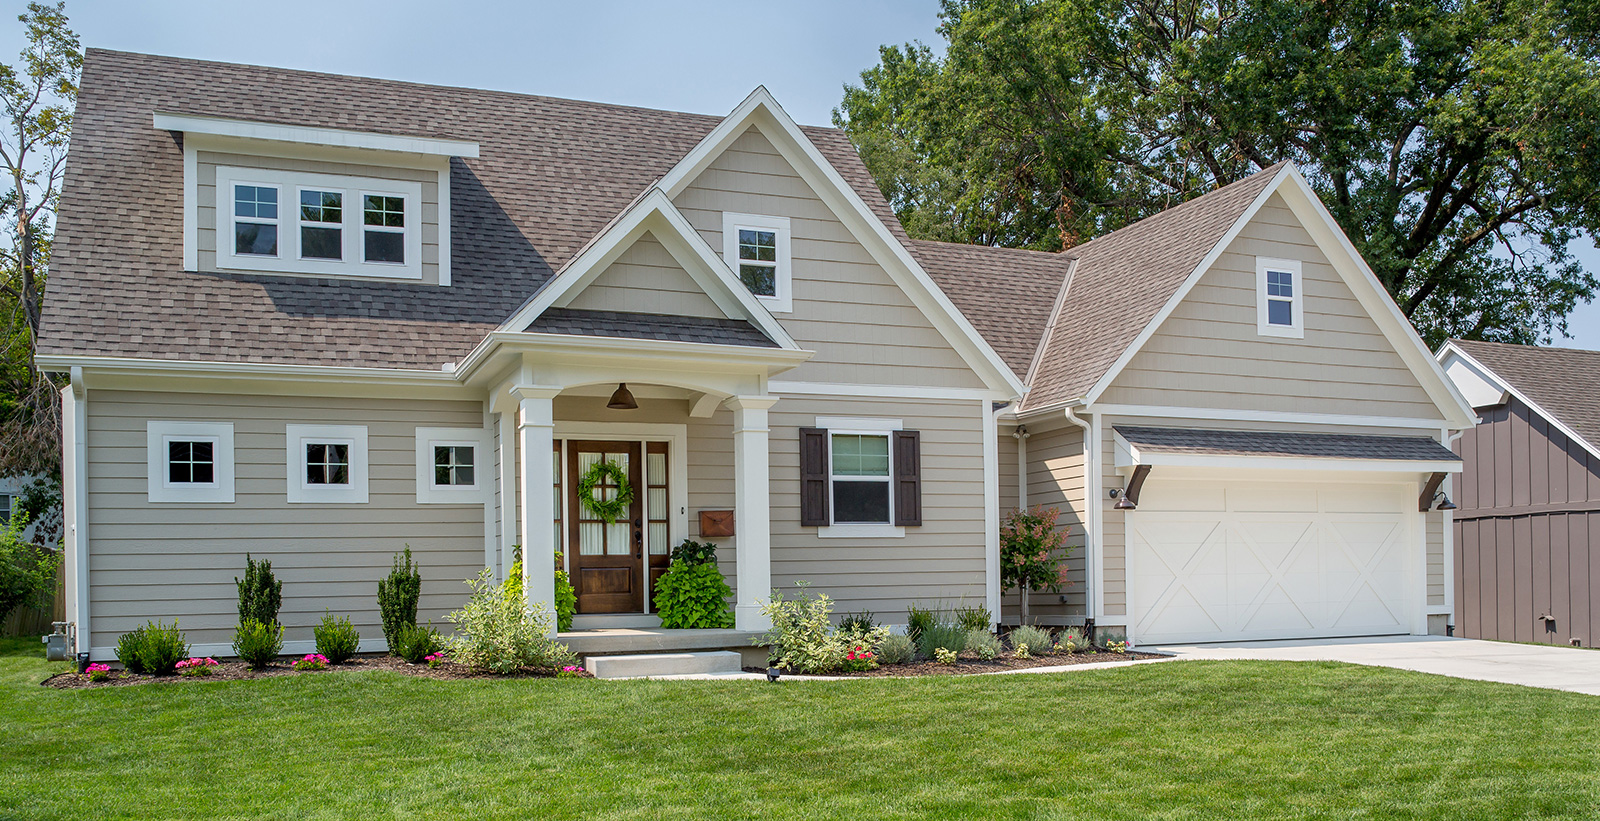 Ranch House Exterior Colors Ideas And Inspiration Paint Colors Behr